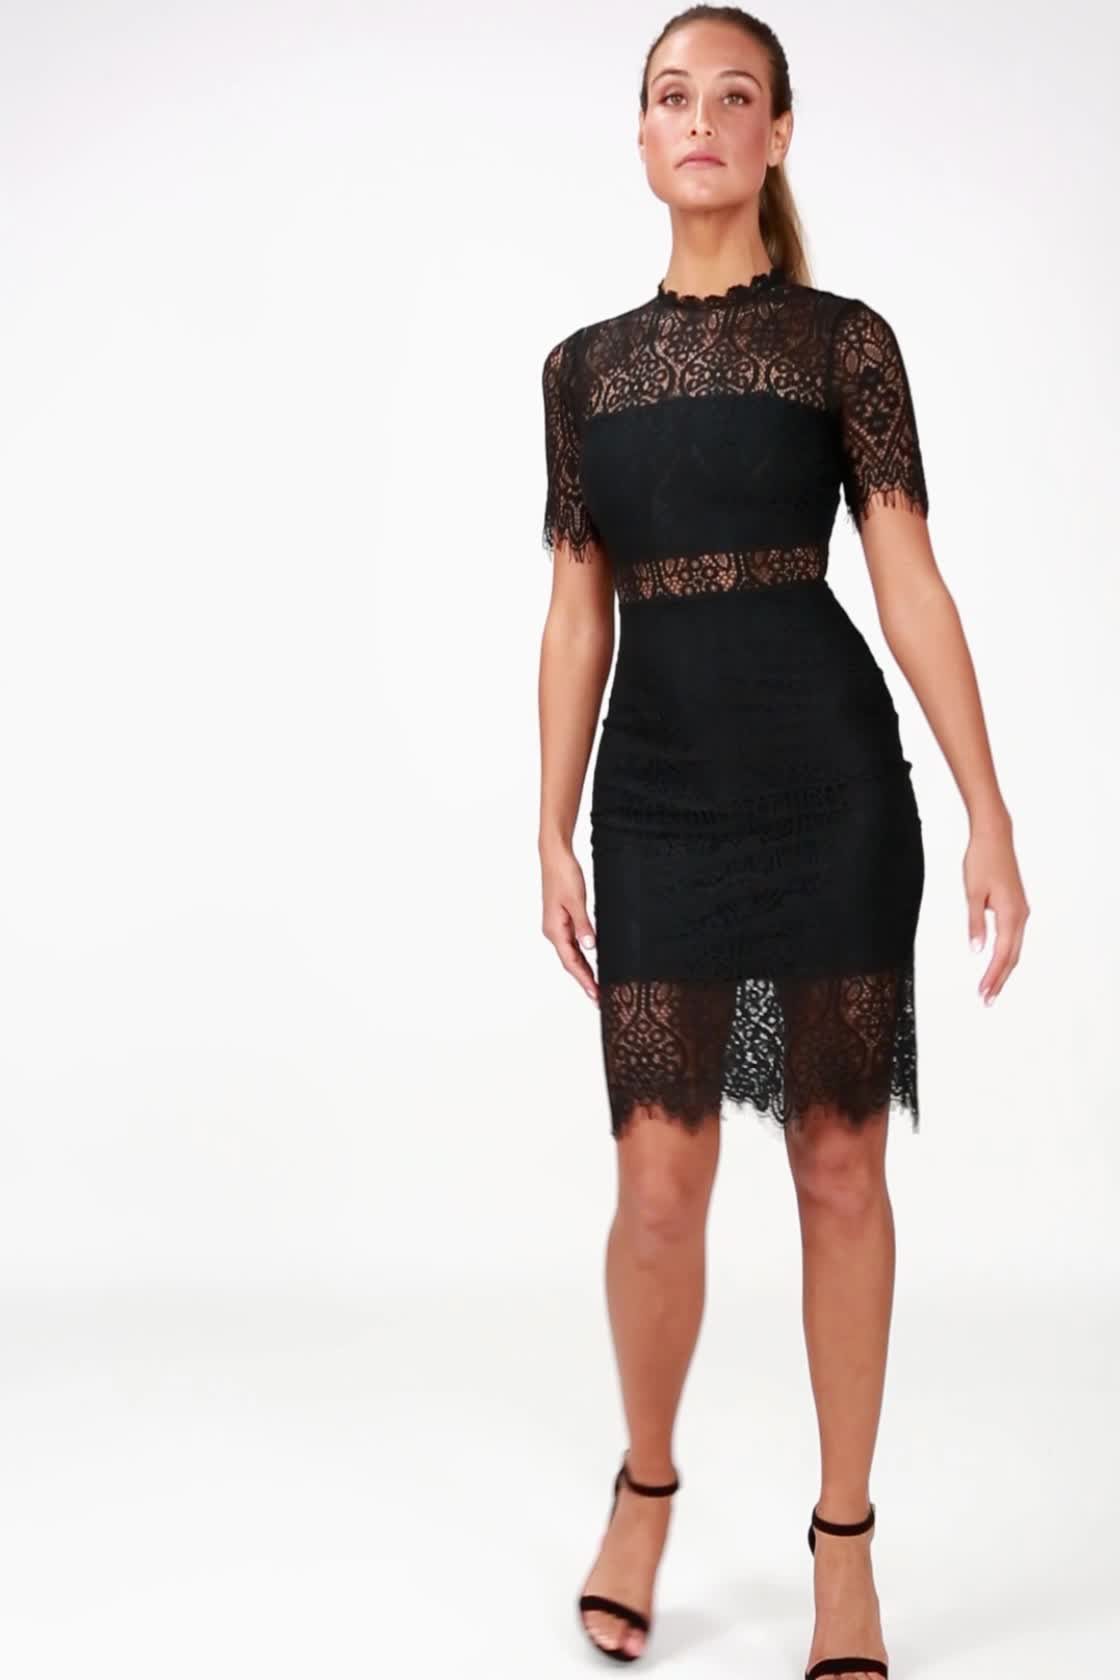 92de5c85fd2e0 Chic Black Dress - Lace Dress - LBD - Sheath Dress